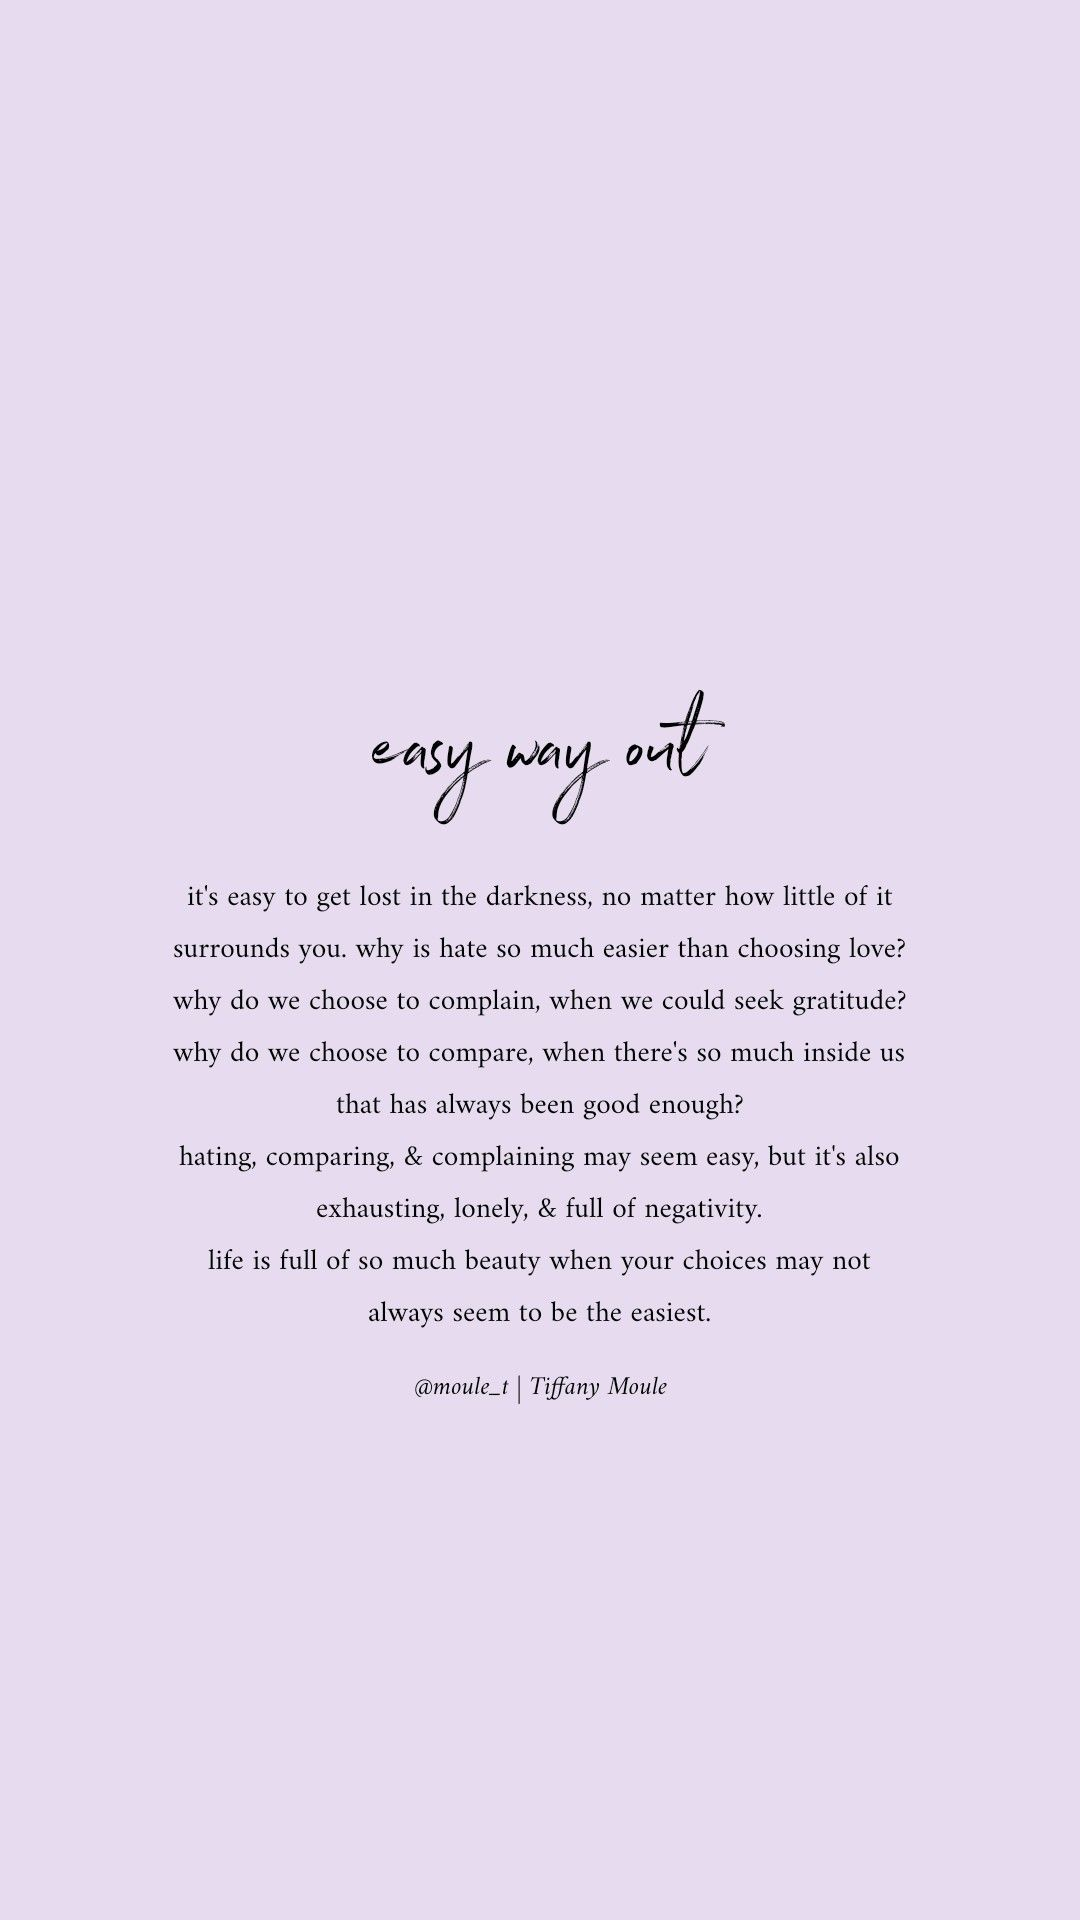 Never chose the easy way out #quote #quotesaboutlife